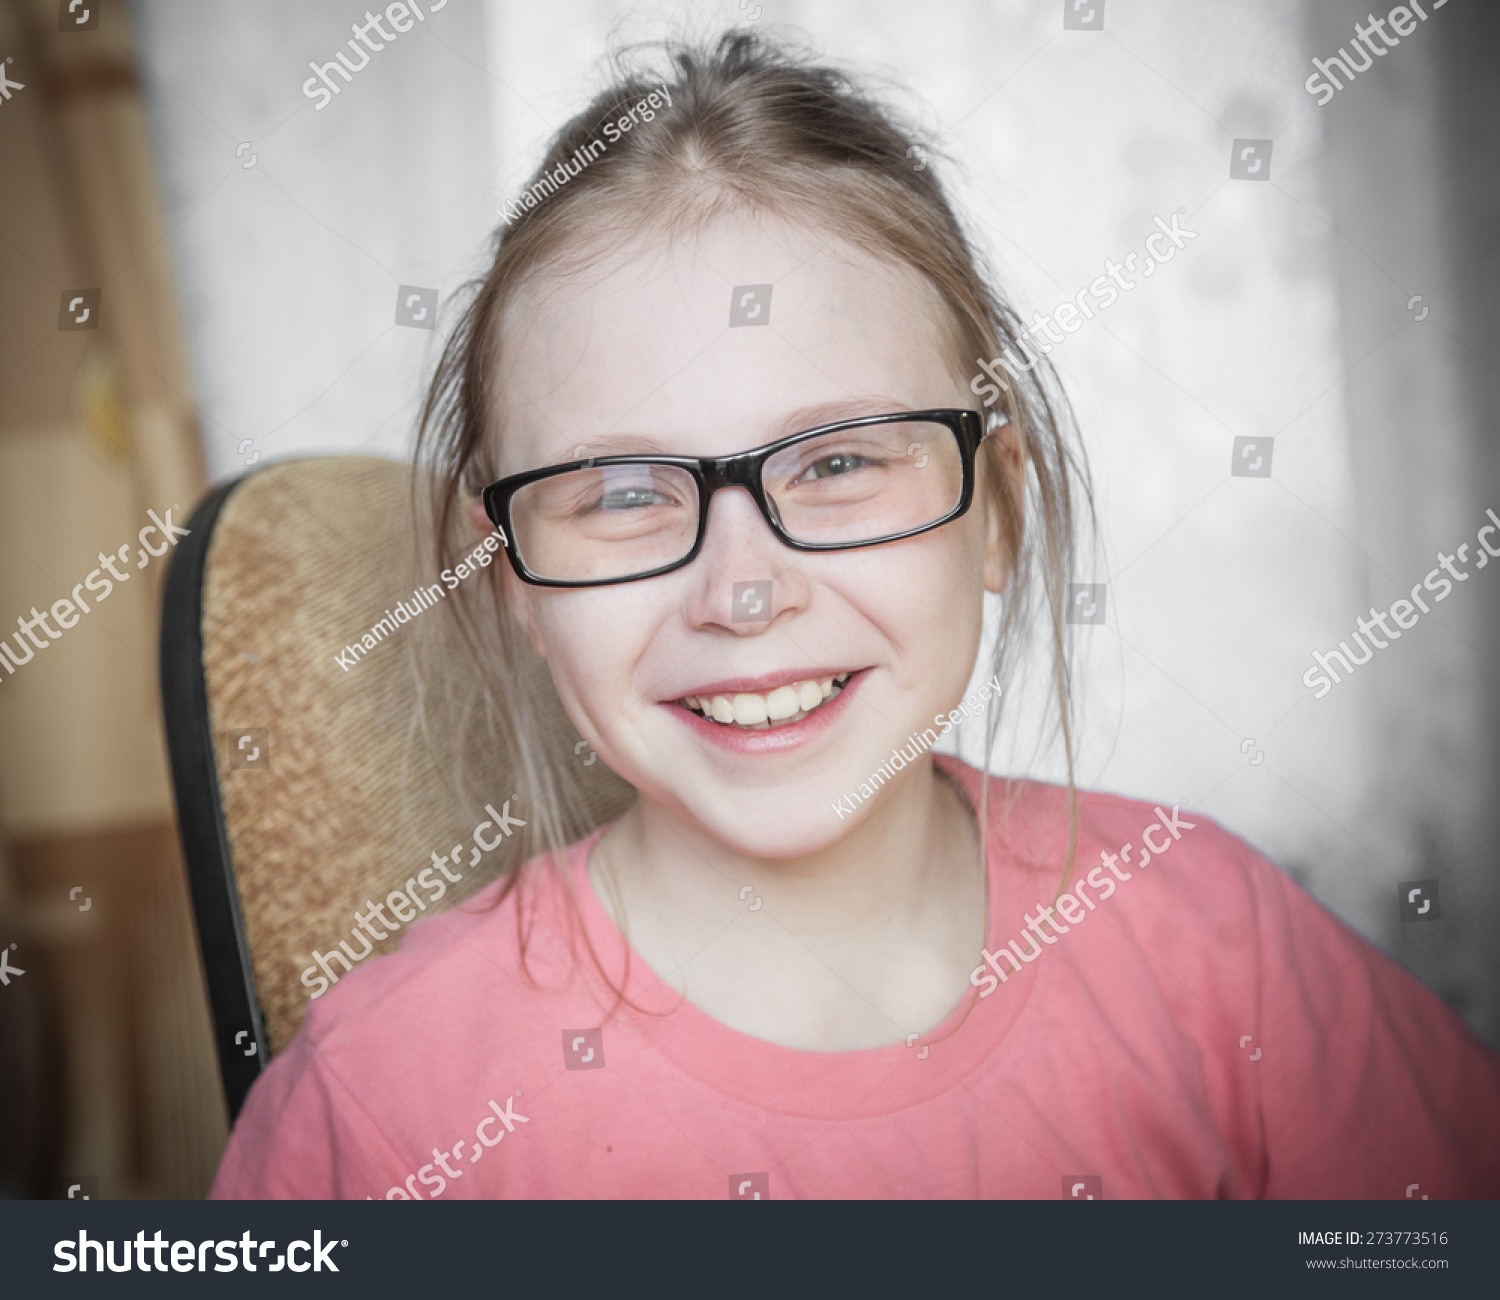 Cute Kid Girl Home While Wearing Stock Photo 273773516 - Shutterstock